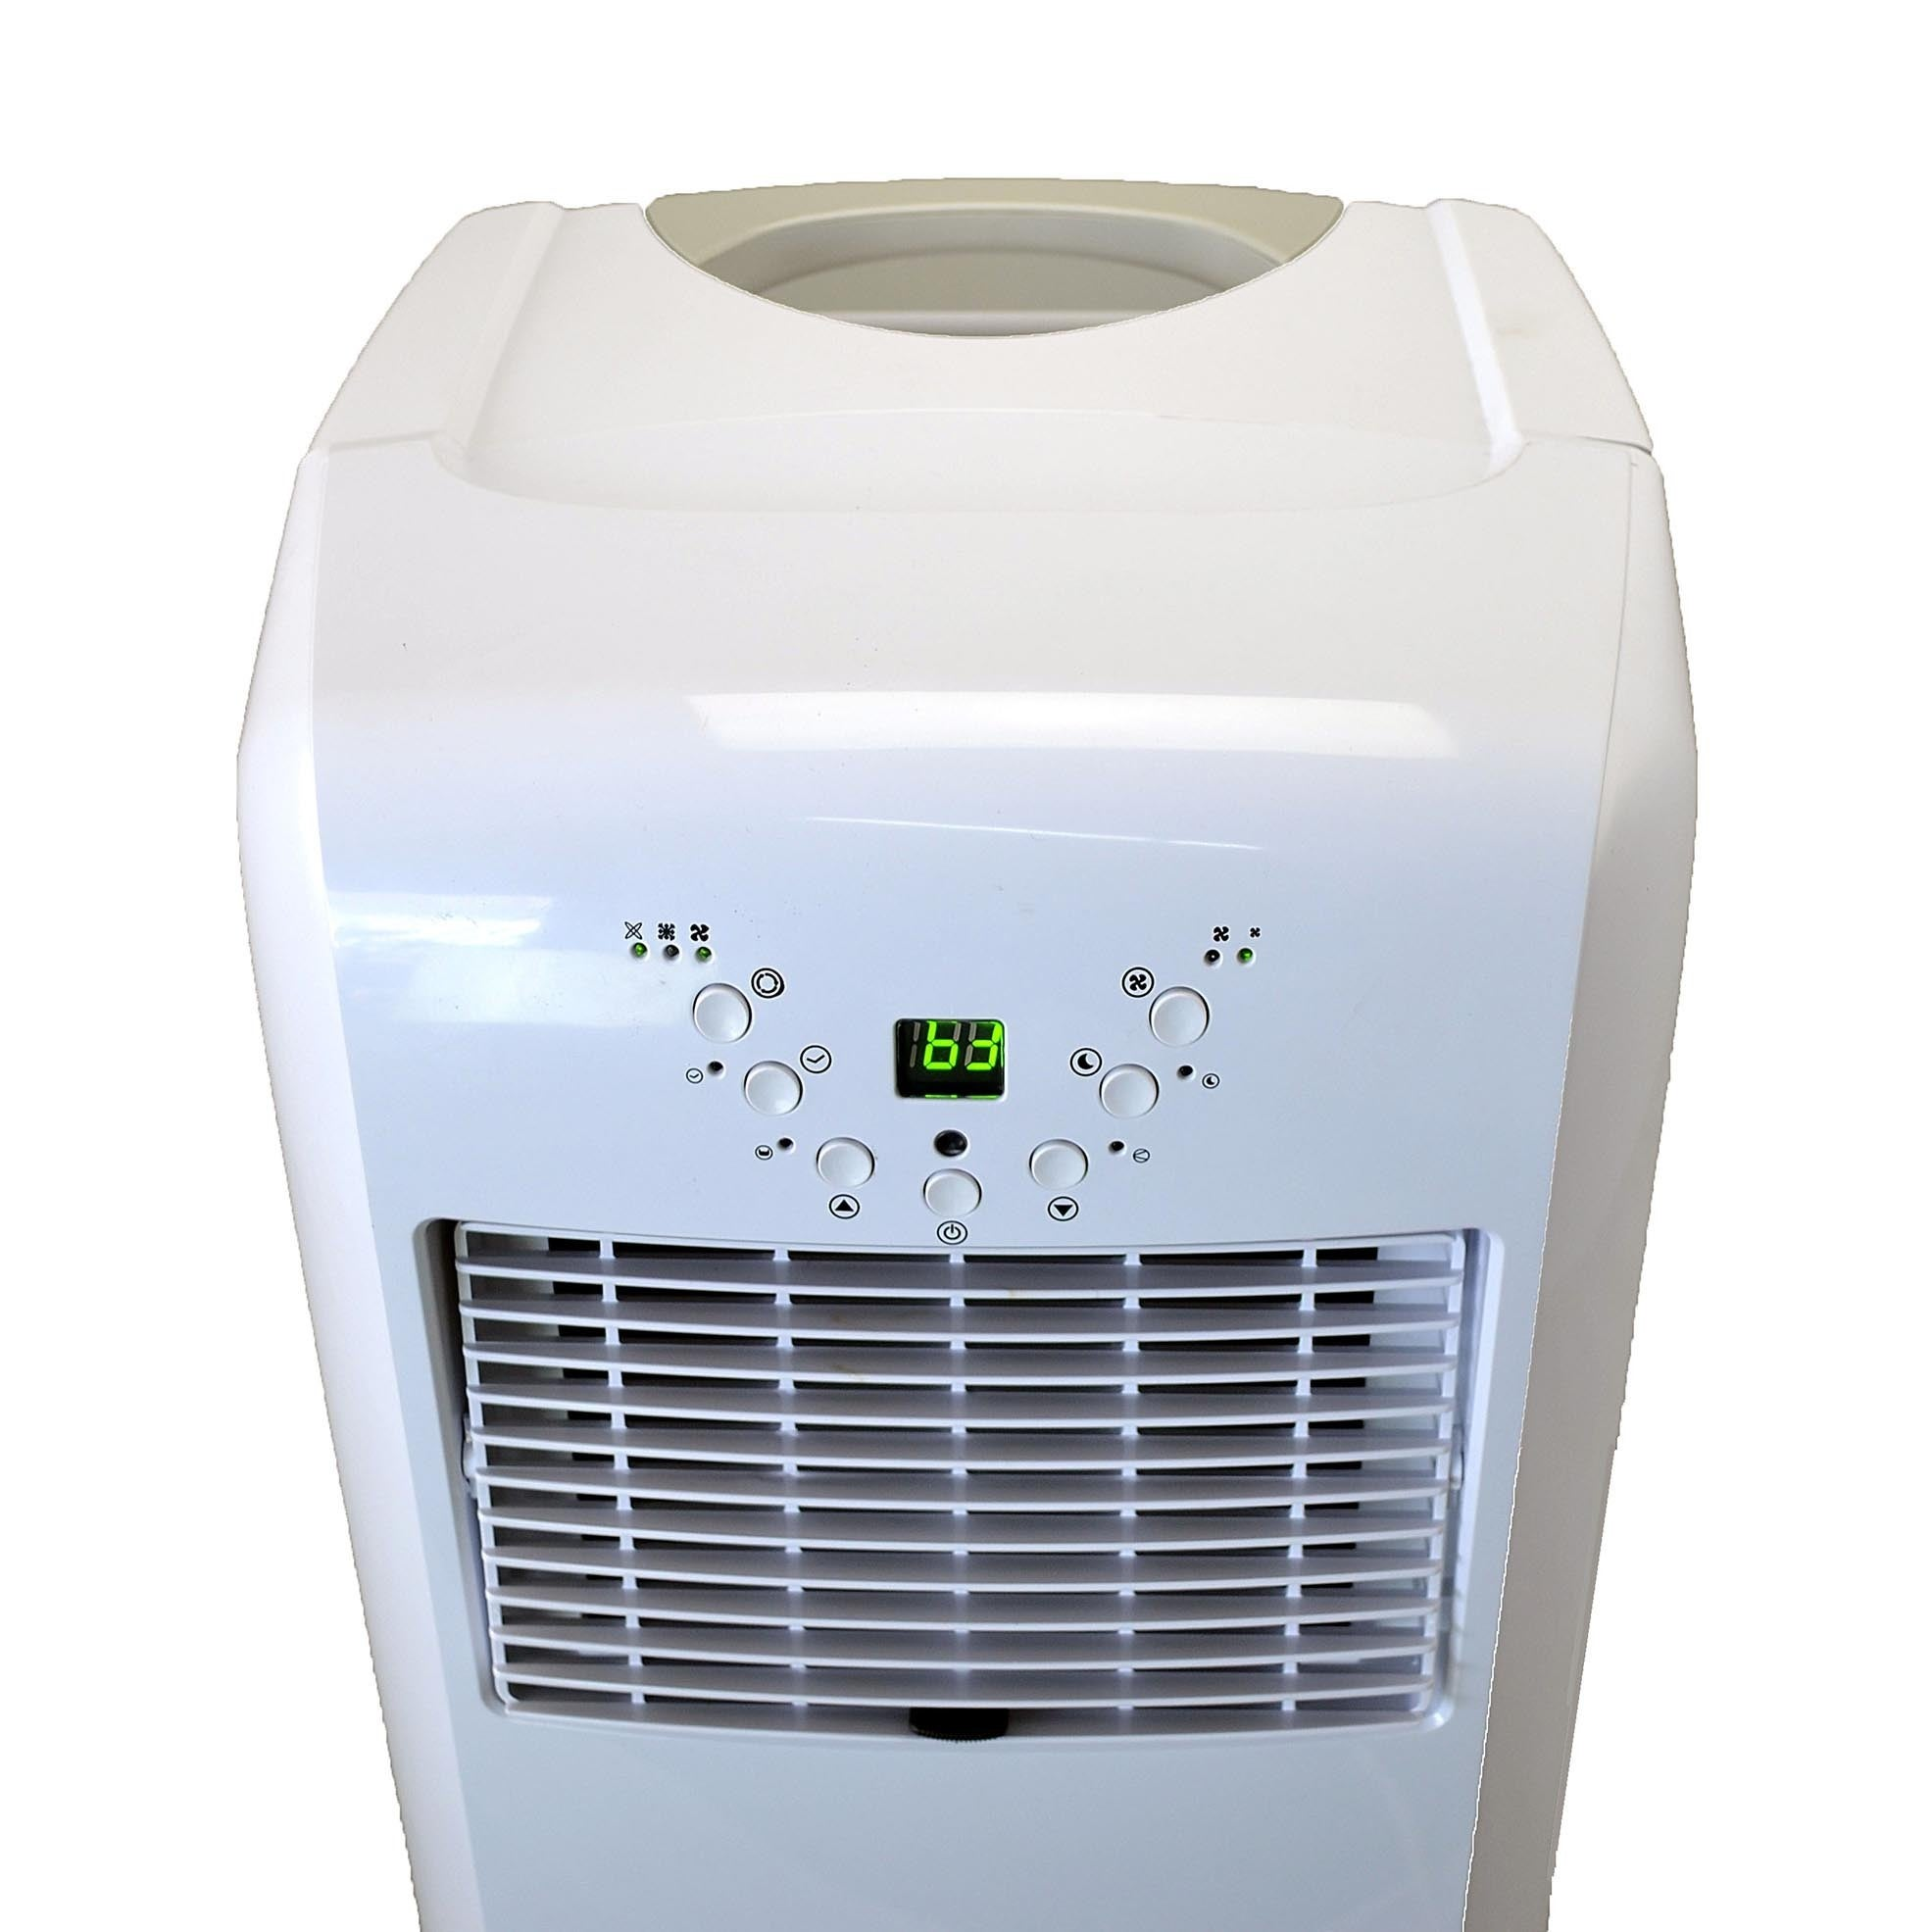 Newair Appliances Portable UL Listed Air Conditioner   Free Shipping Today    Overstock   14866567